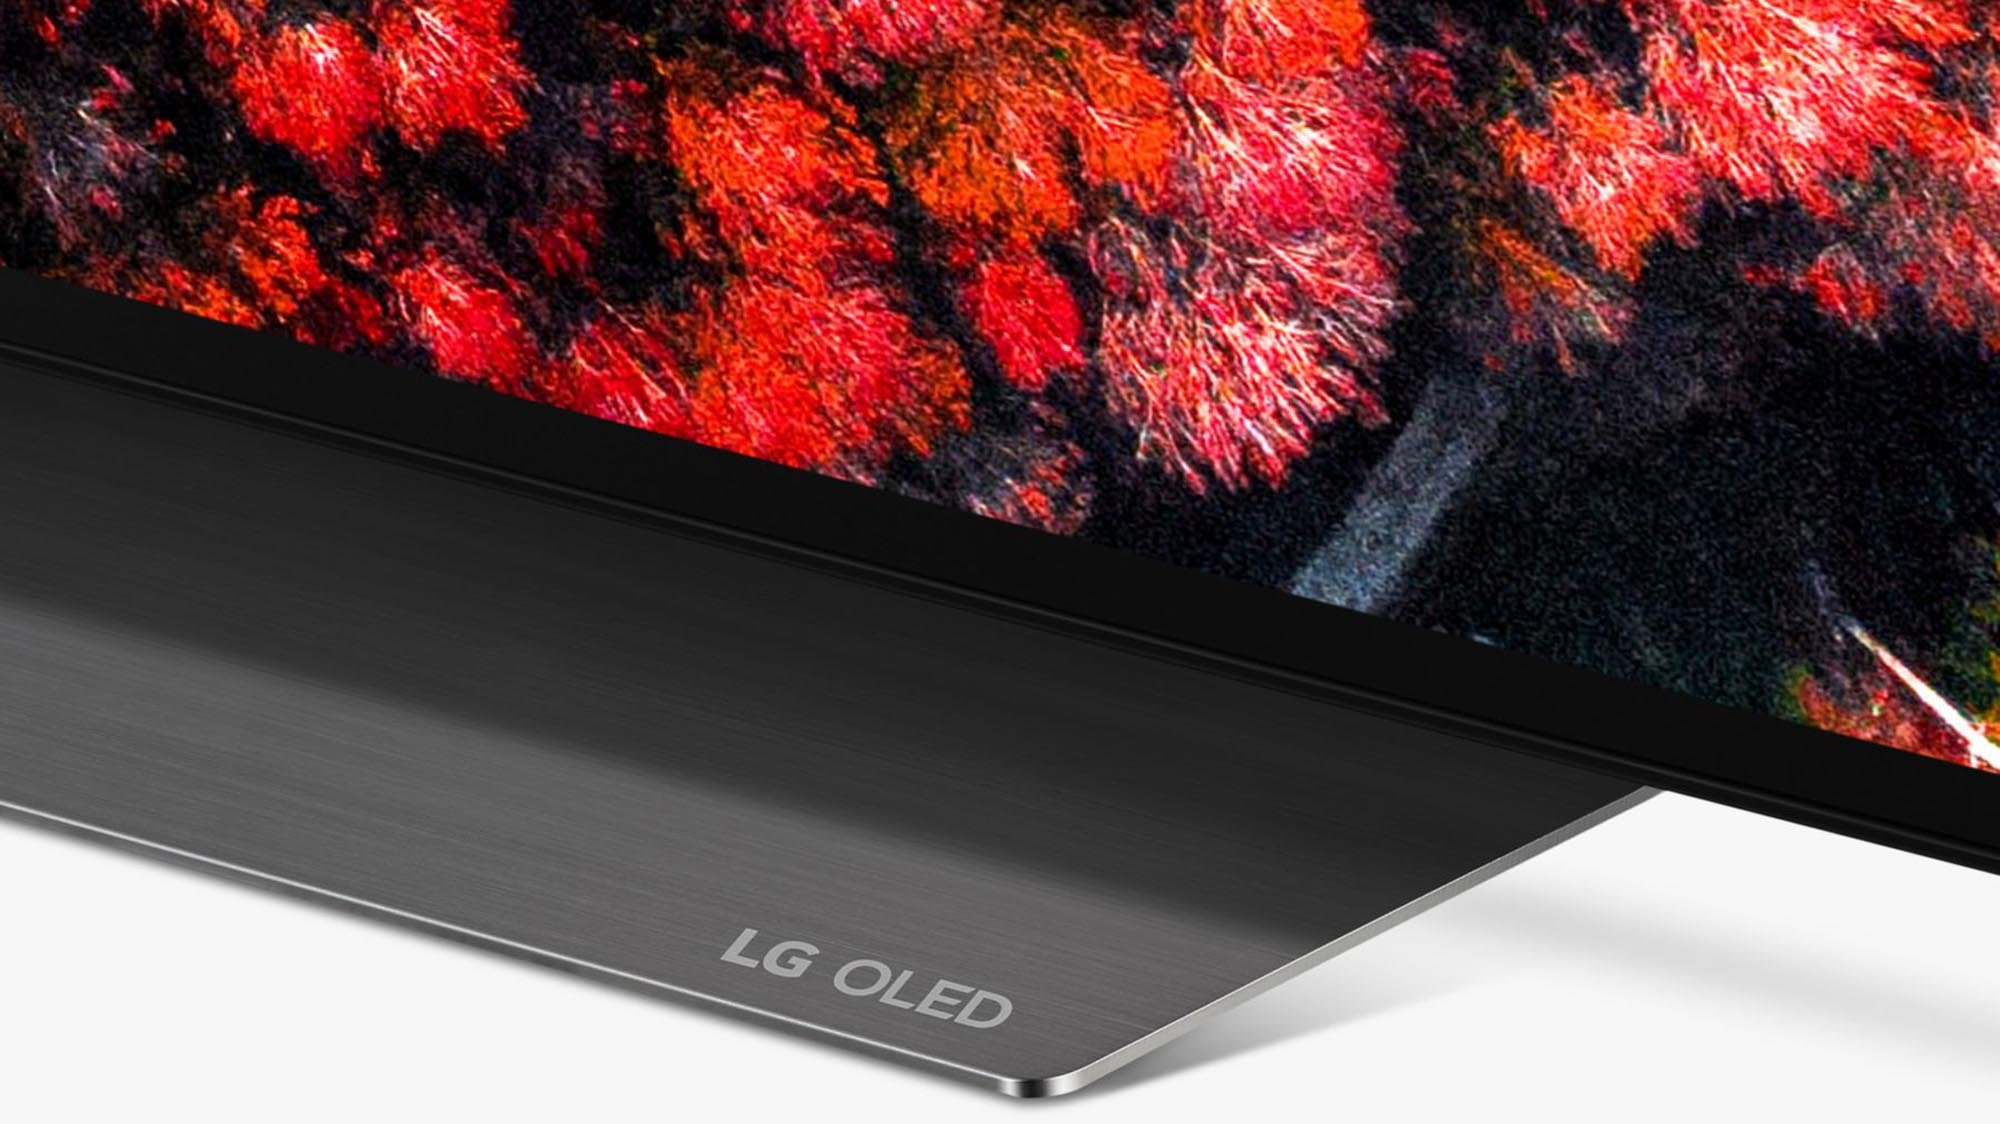 LG C9 OLED (OLED55C9 OLED65C9 OLED77C9) review: Another OLED triumph